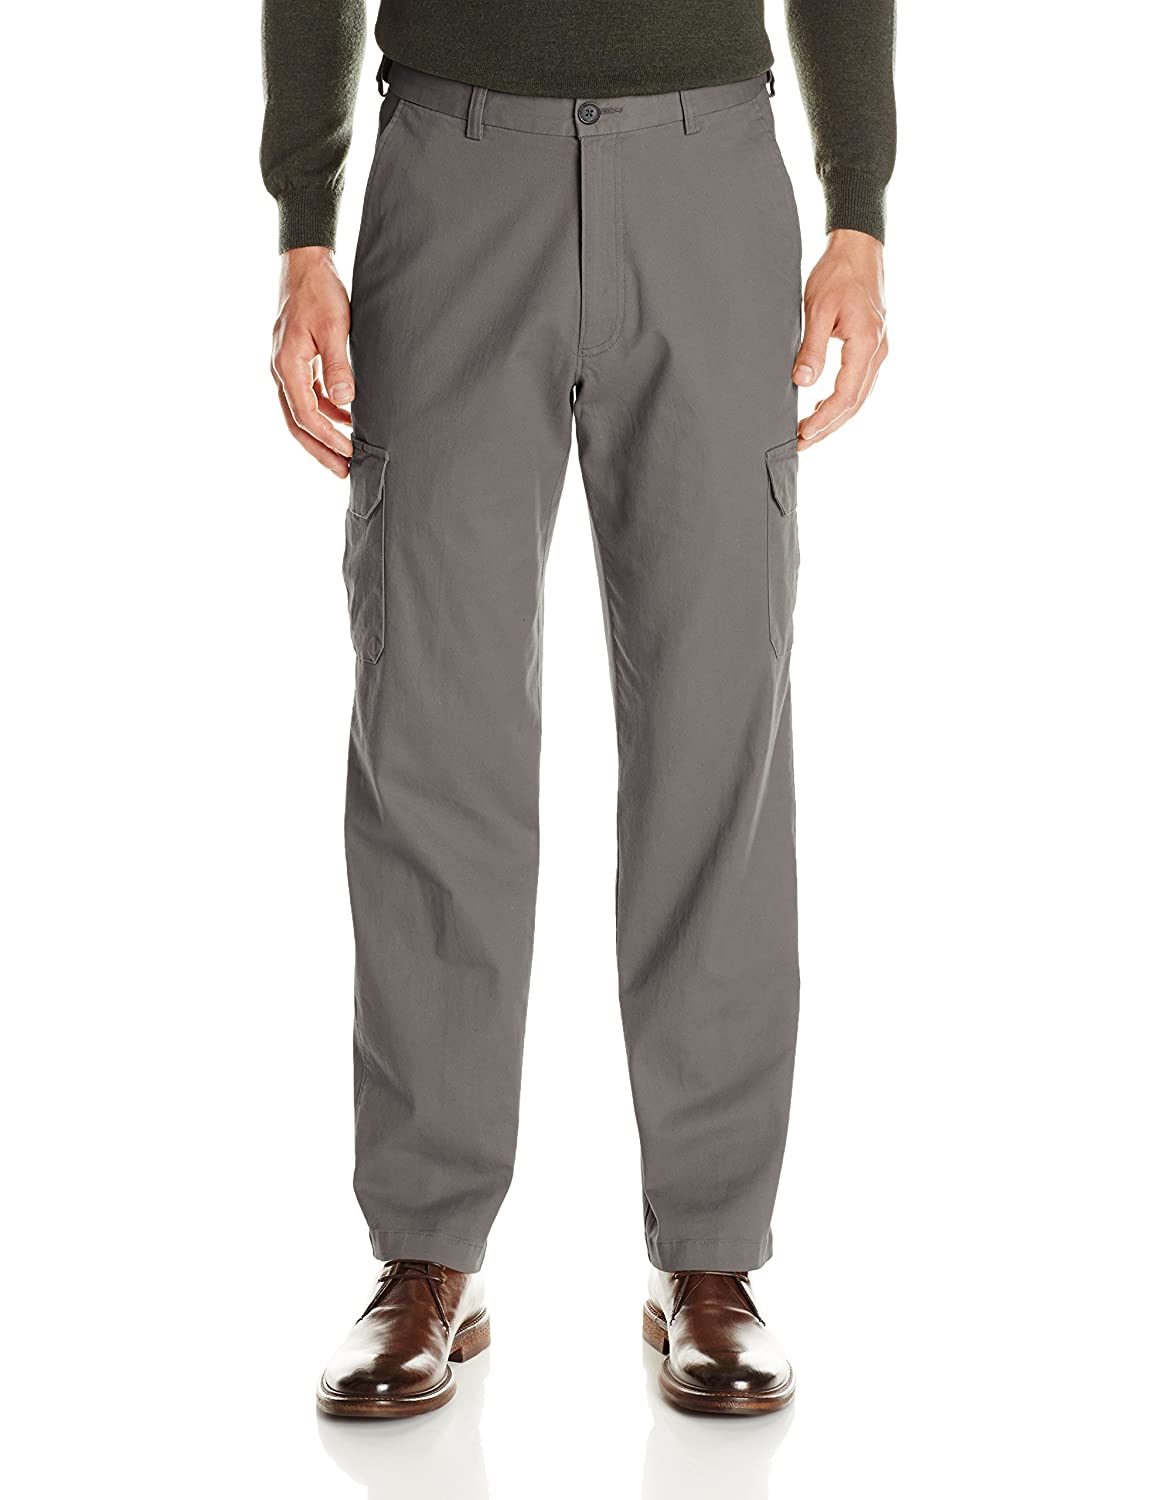 7b7822a5 Haggar Men's Stretch Comfort Cargo Expandable-Waist Classic-Fit Pant at  Amazon Men's Clothing store: